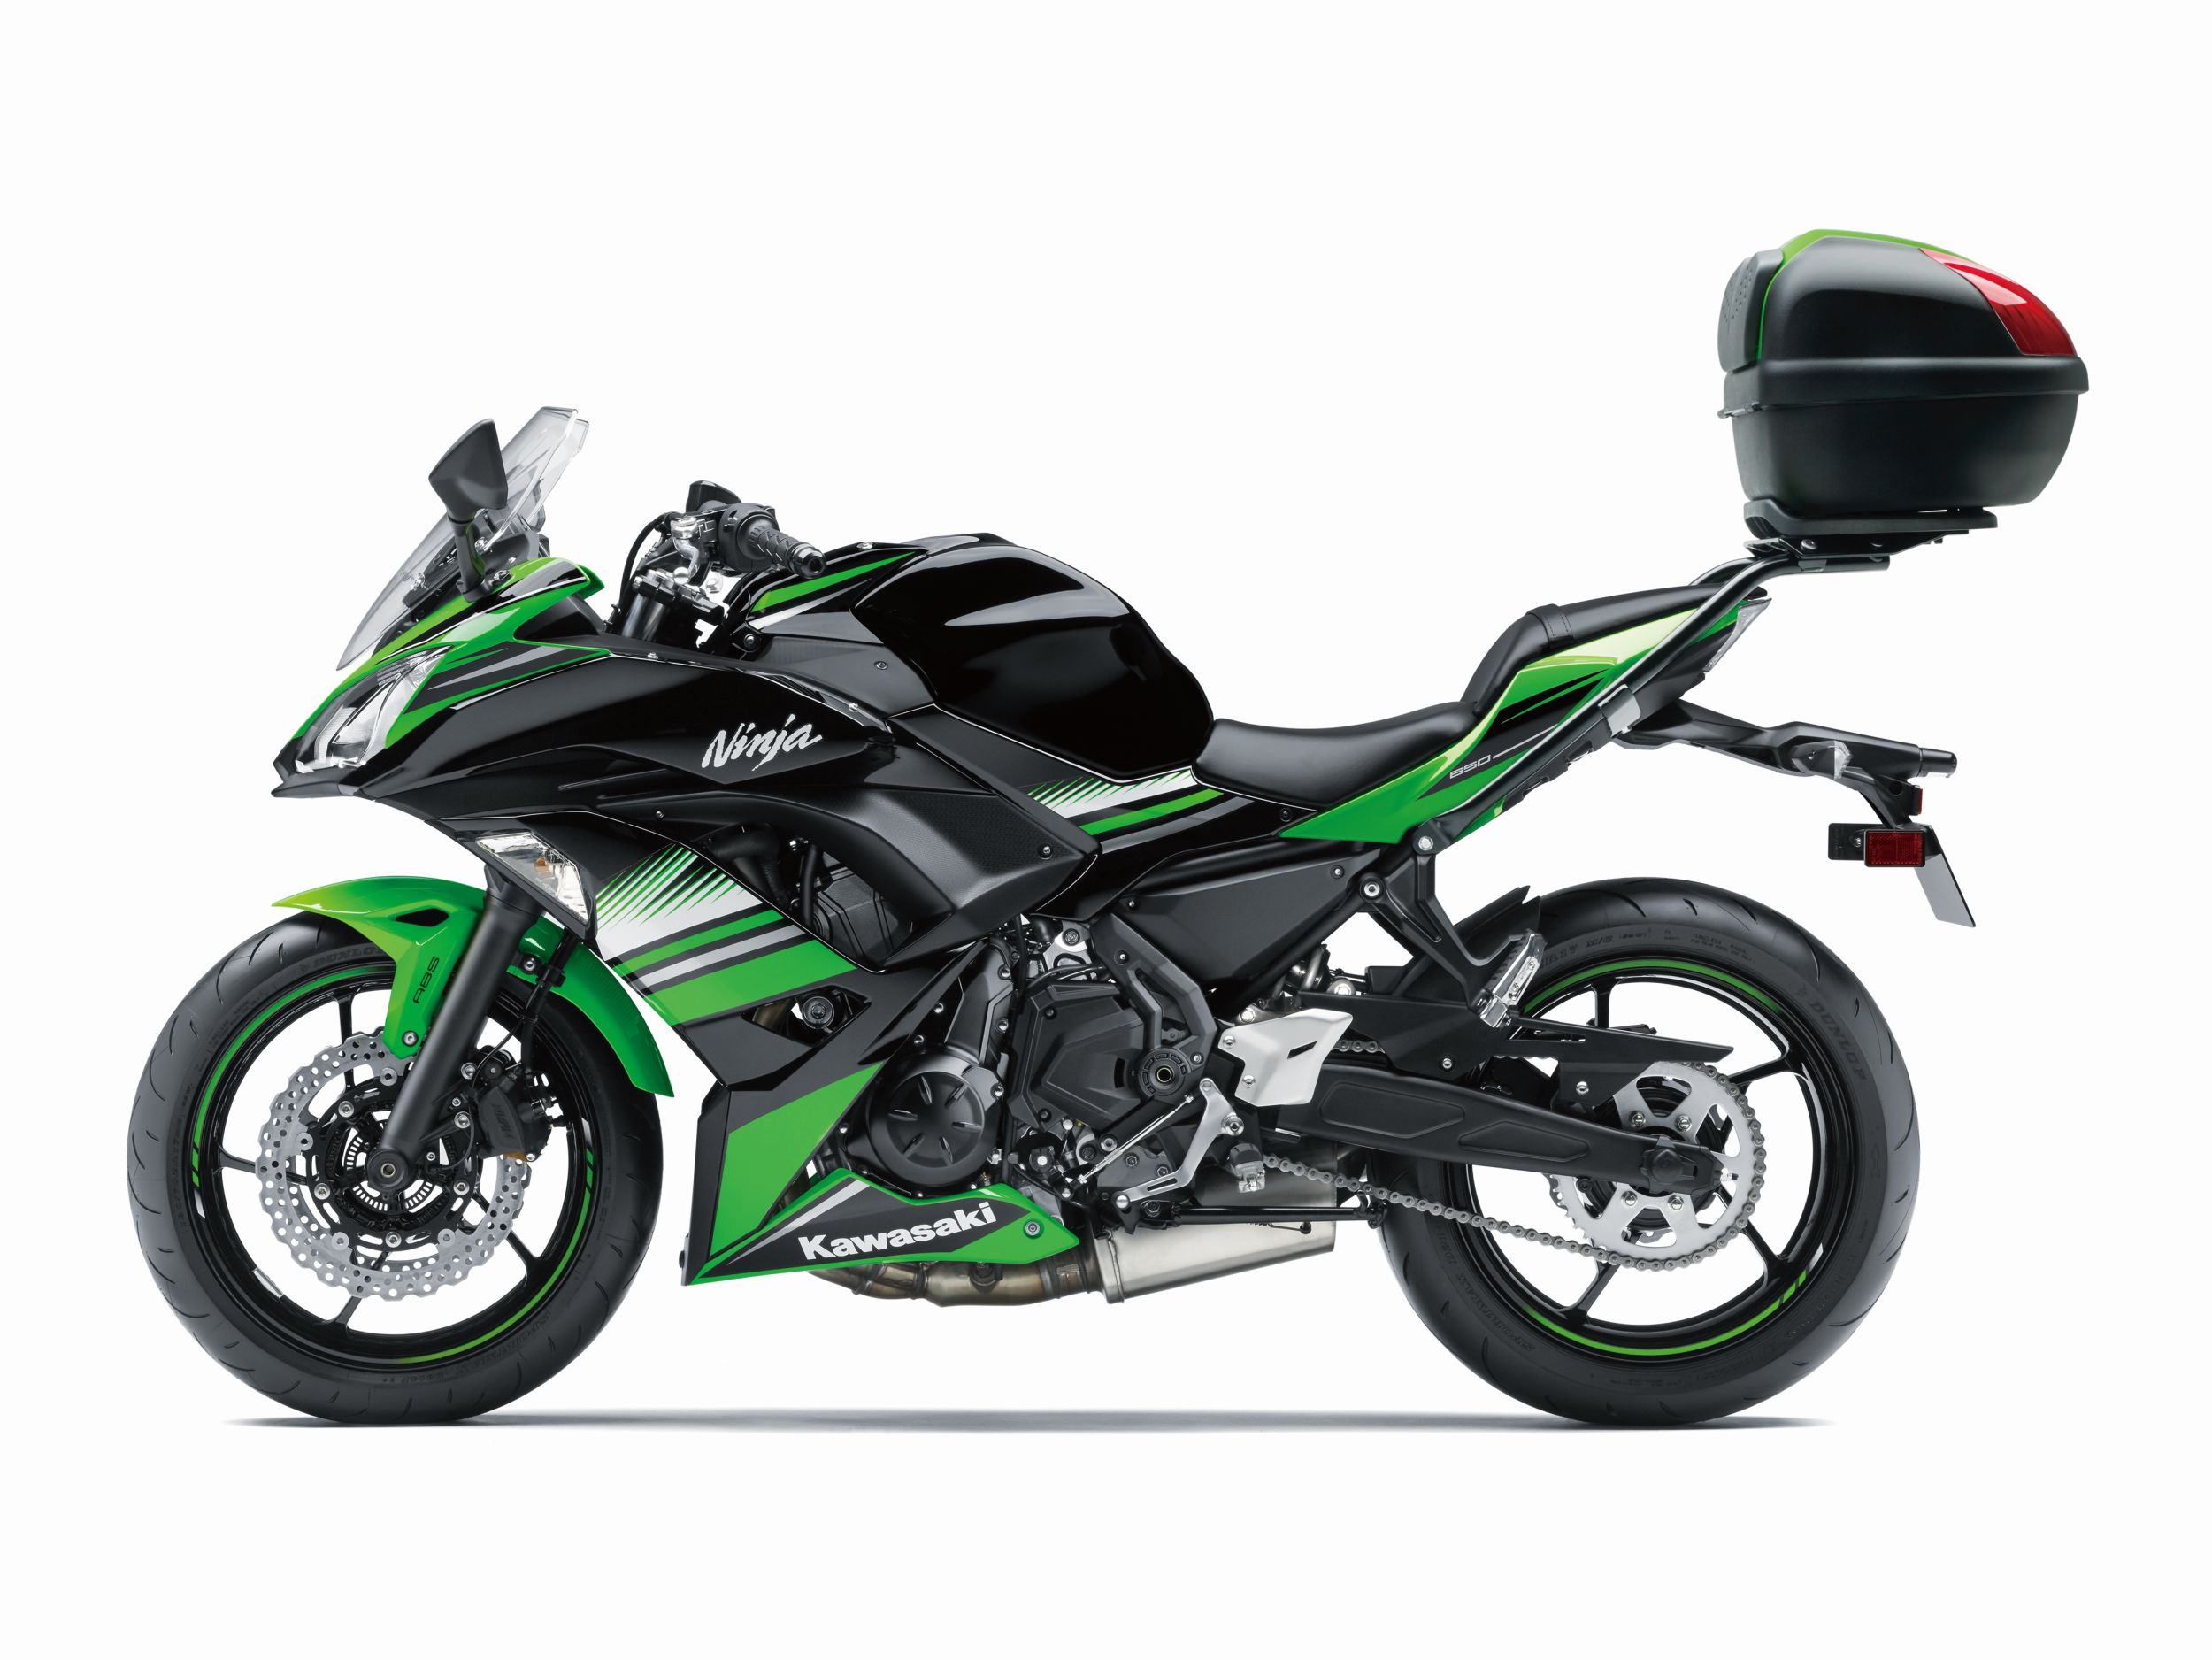 motorrad occasion kawasaki ninja 650 kaufen. Black Bedroom Furniture Sets. Home Design Ideas